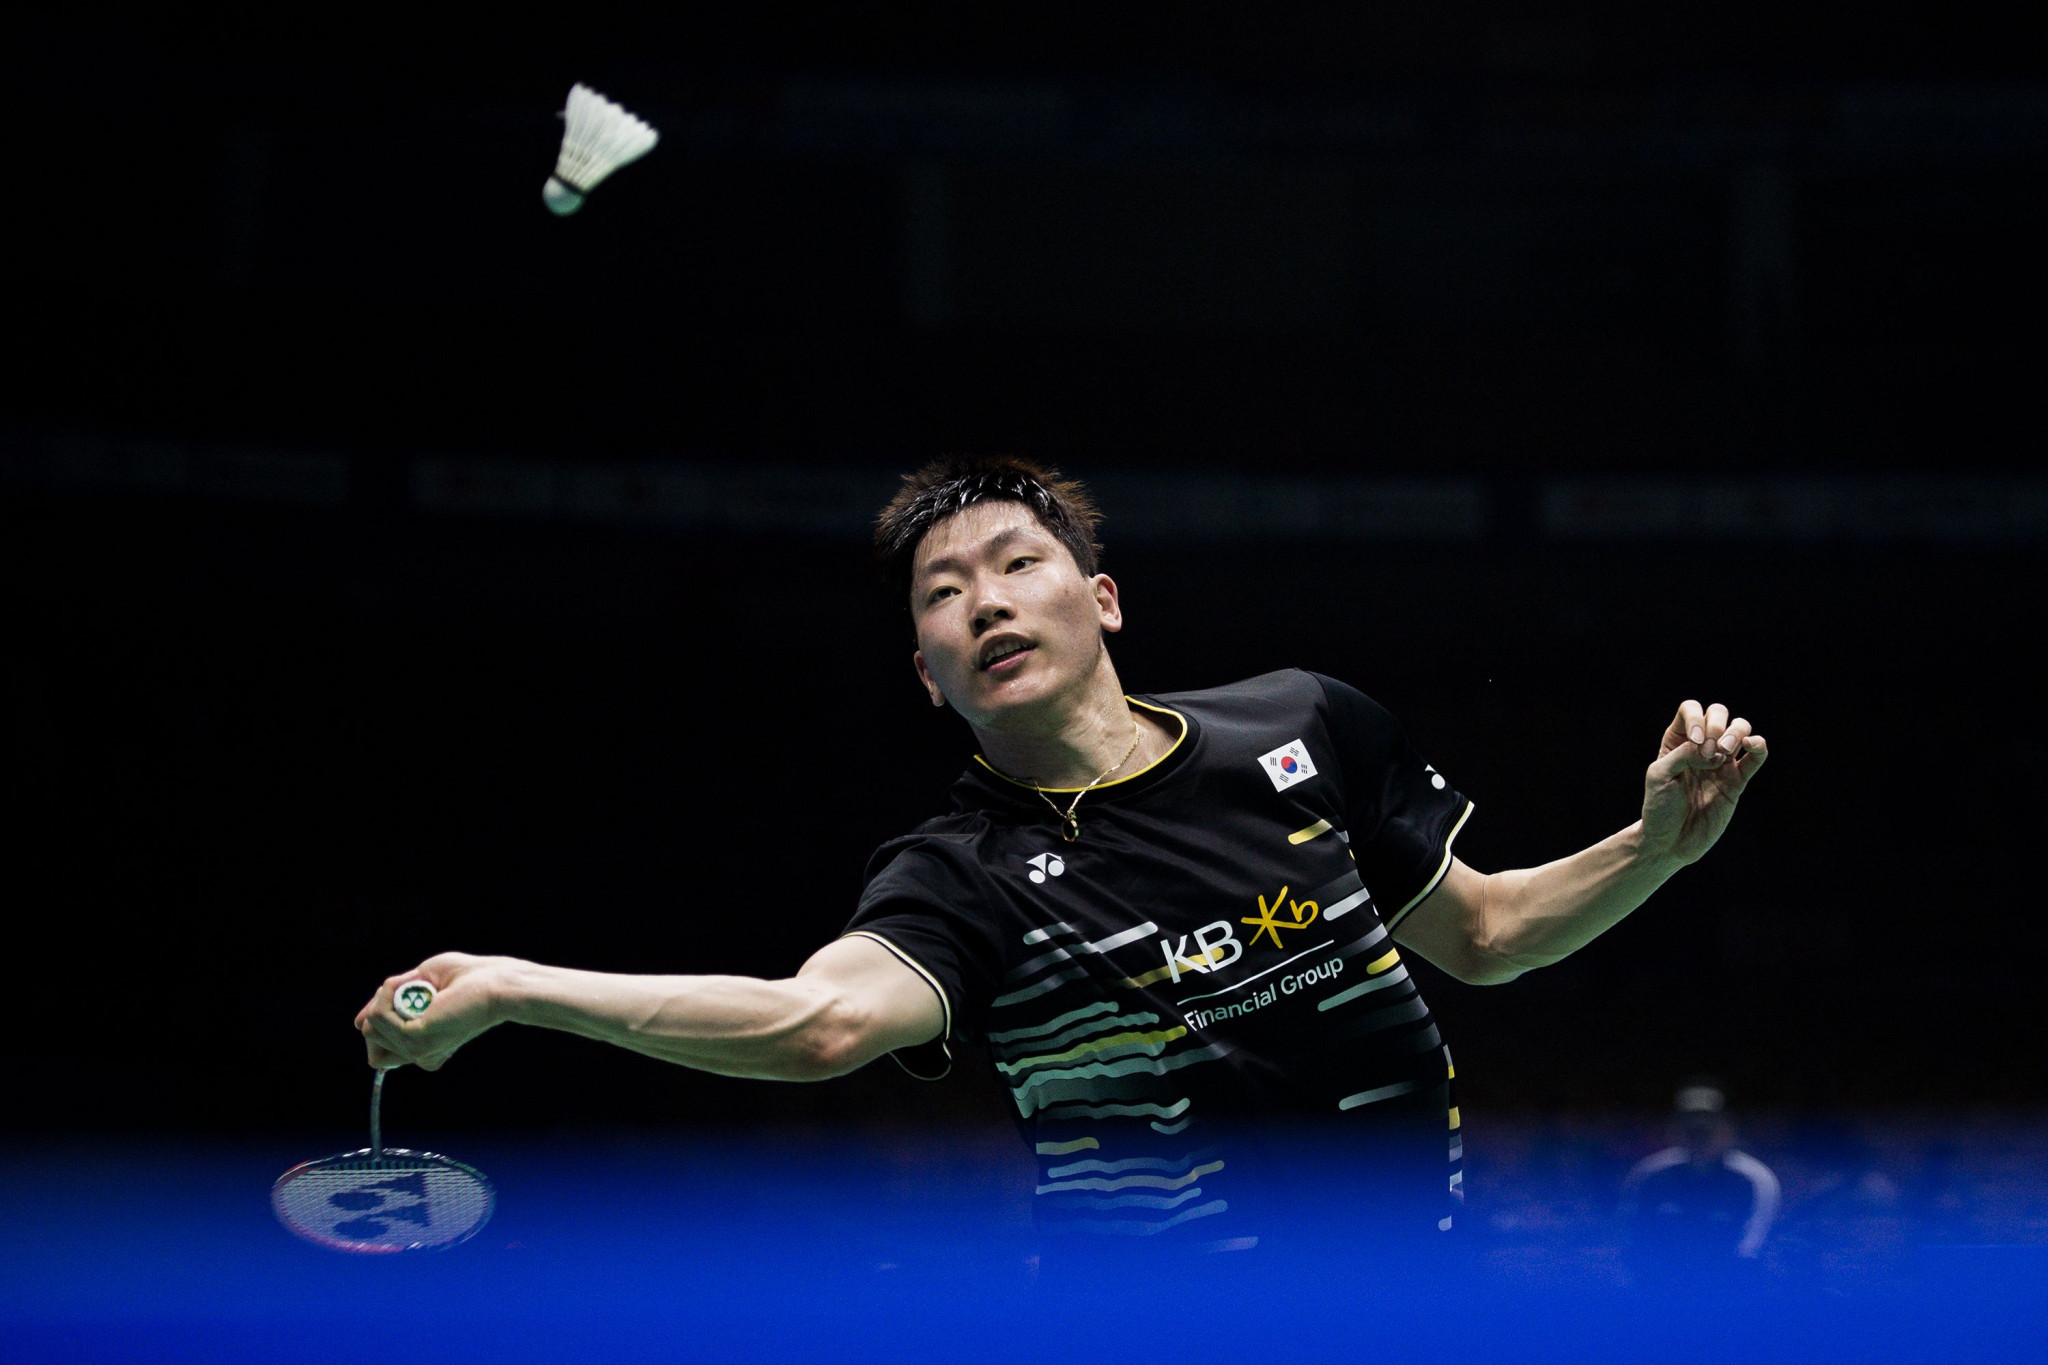 Lee Dong-keun is hoping for tournament success at the Canada Open ©Getty Images